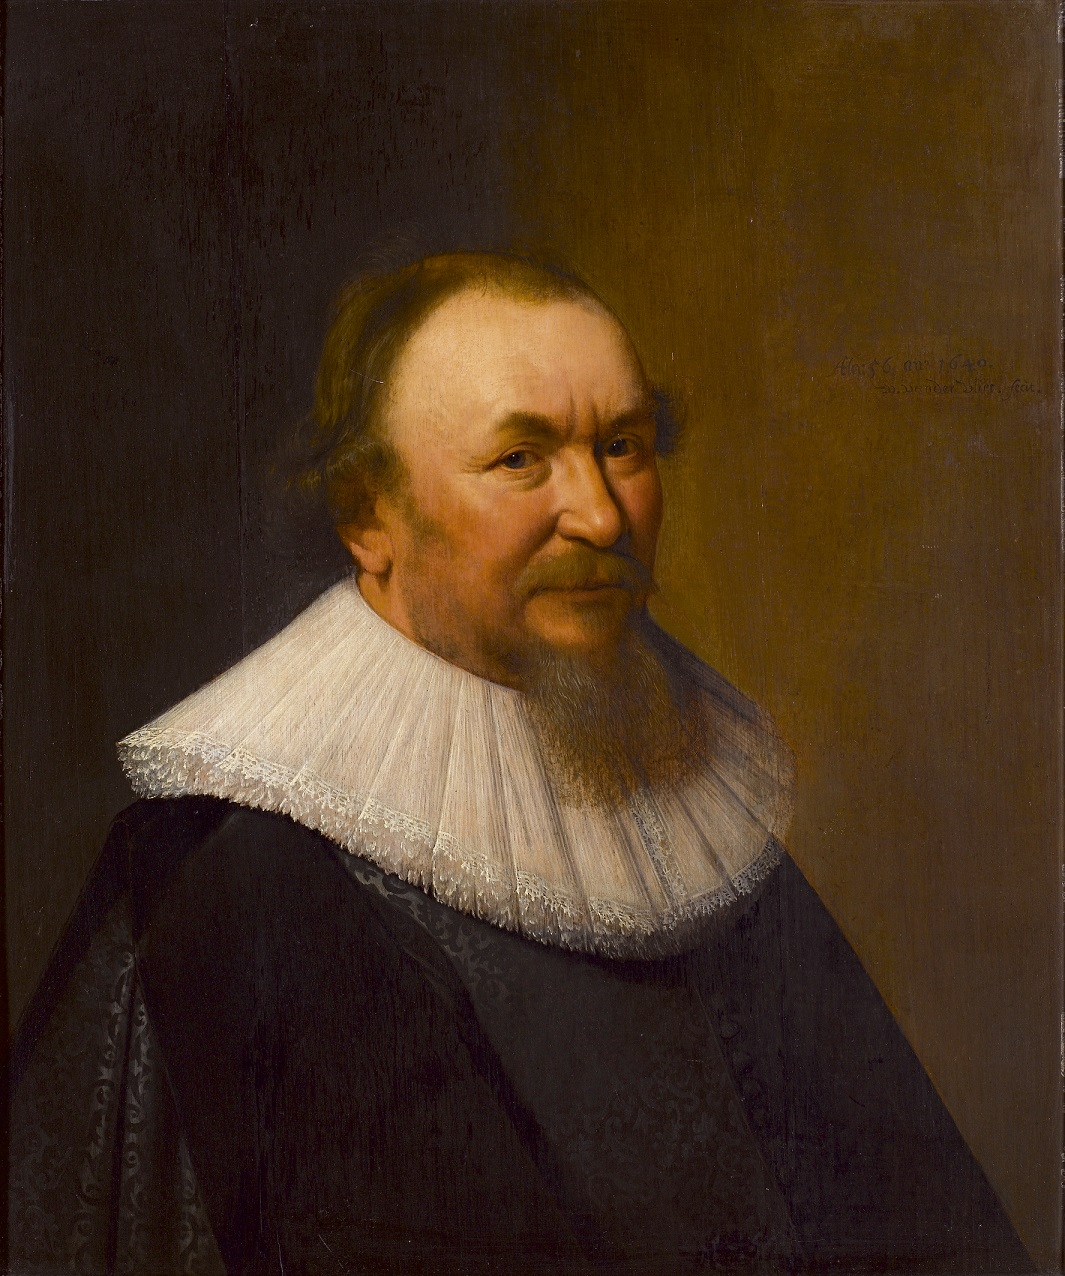 Fig. 10. Willem van der Vliet (1584-1642), <em>Portrait of Pieter Jacobsz Pauw</em>, 1640<br>Acquired with support from the Rembrandt Association (with assistance from the BankGiro Lottery Acquisition Fund), the VSBfonds and a private benefactor<br> Stedelijk Museum Alkmaar